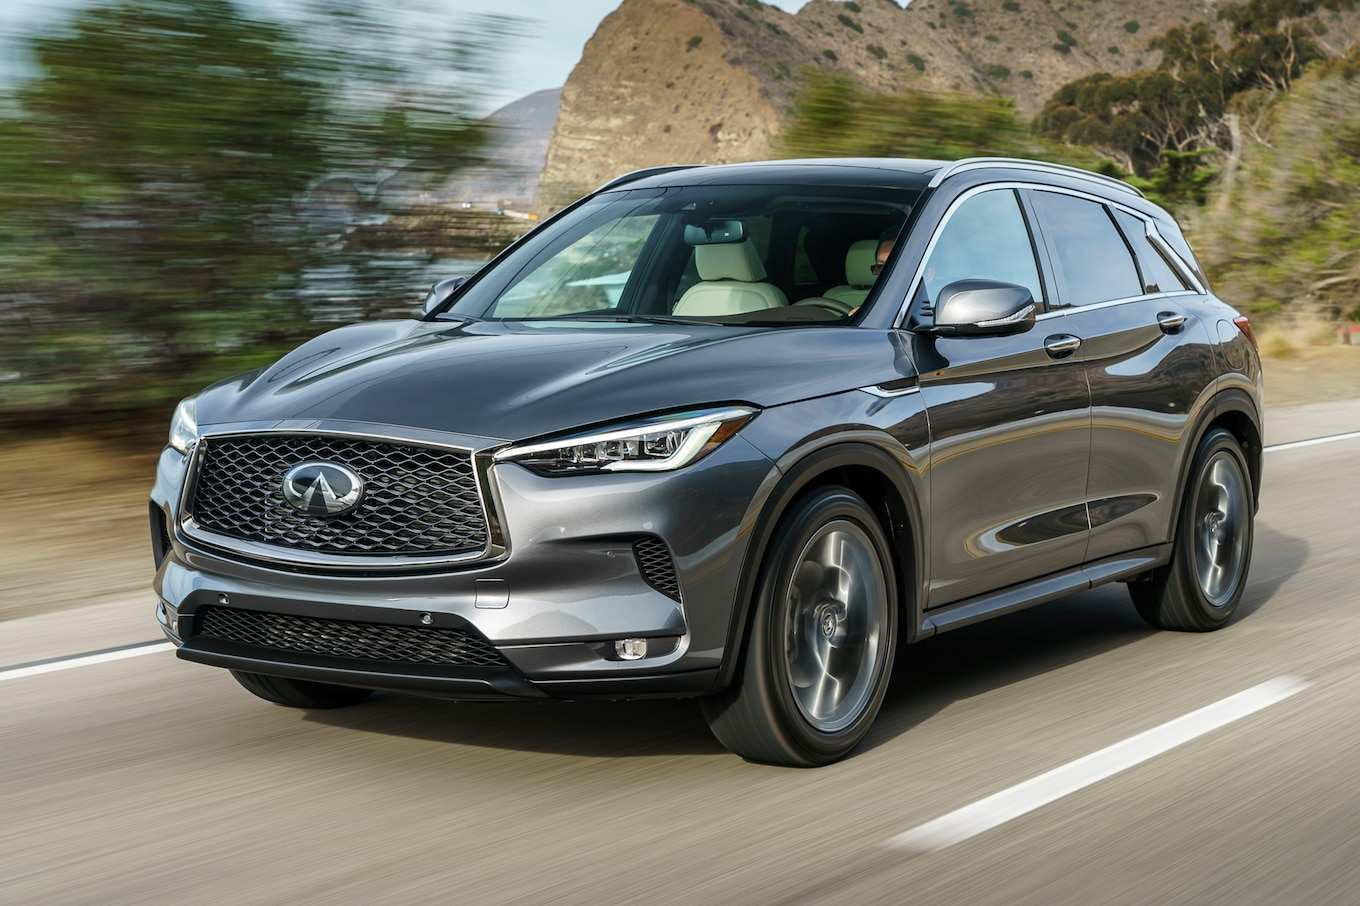 52 Gallery of 2019 Infiniti Qx50 Horsepower Specs and Review with 2019 Infiniti Qx50 Horsepower